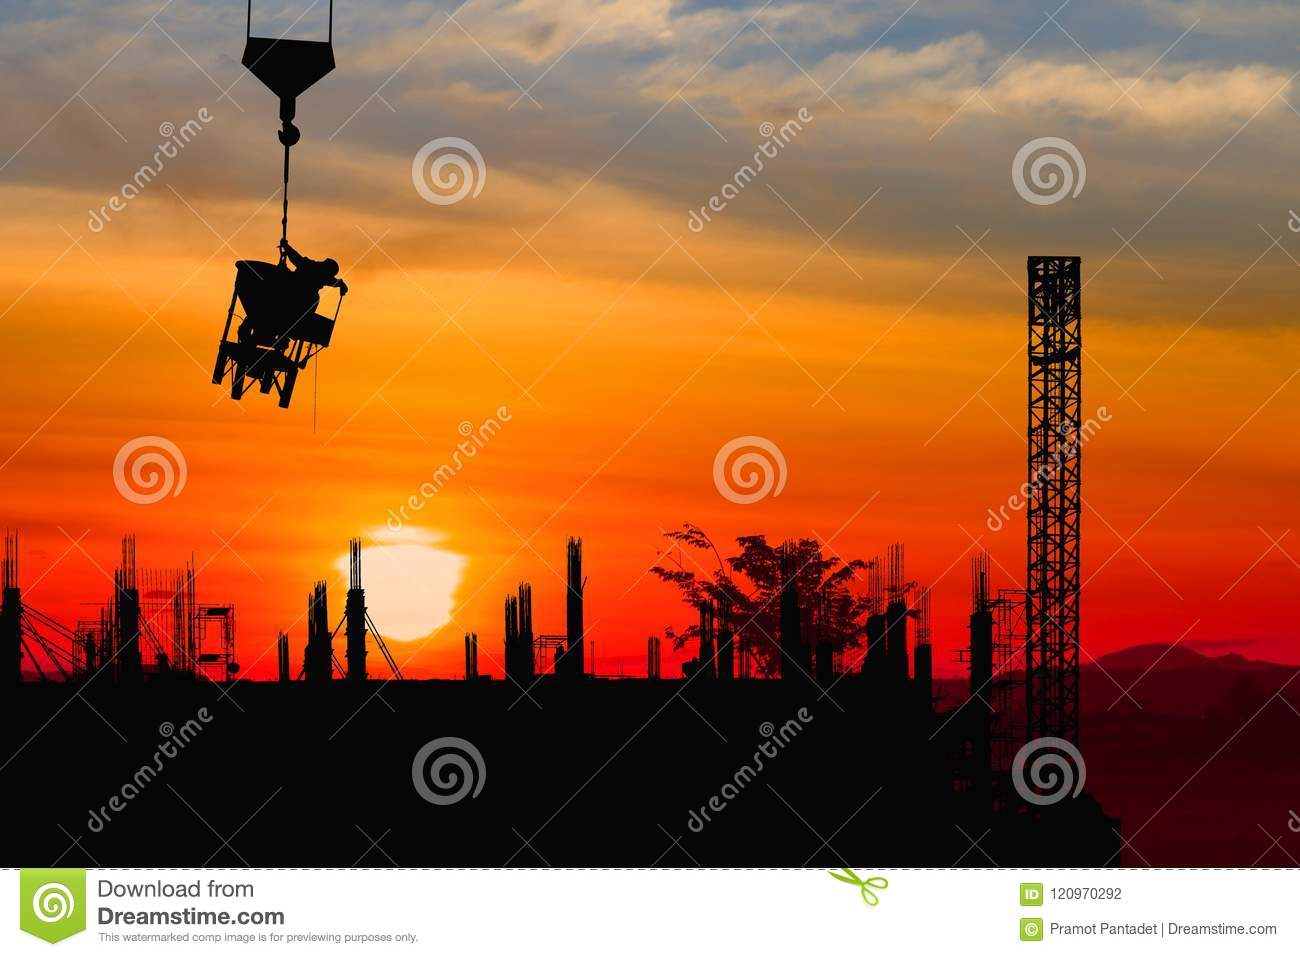 Silhouette construction worker on crane hook on sunset-sunrise time background and copy space